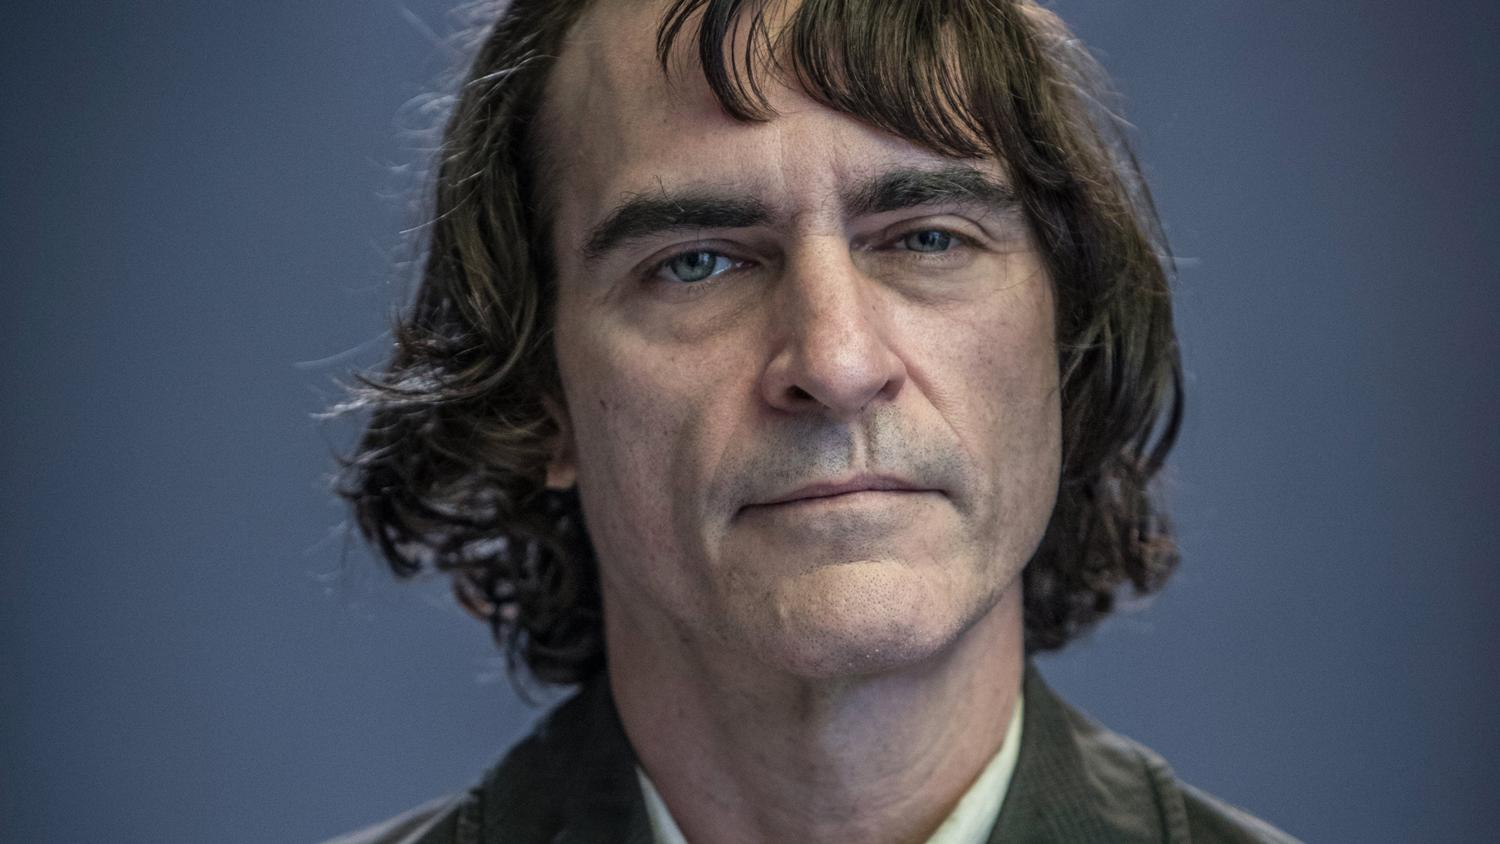 Joaquin Phoenix starrer 'Joker' not inspired from comics: Todd Phillips